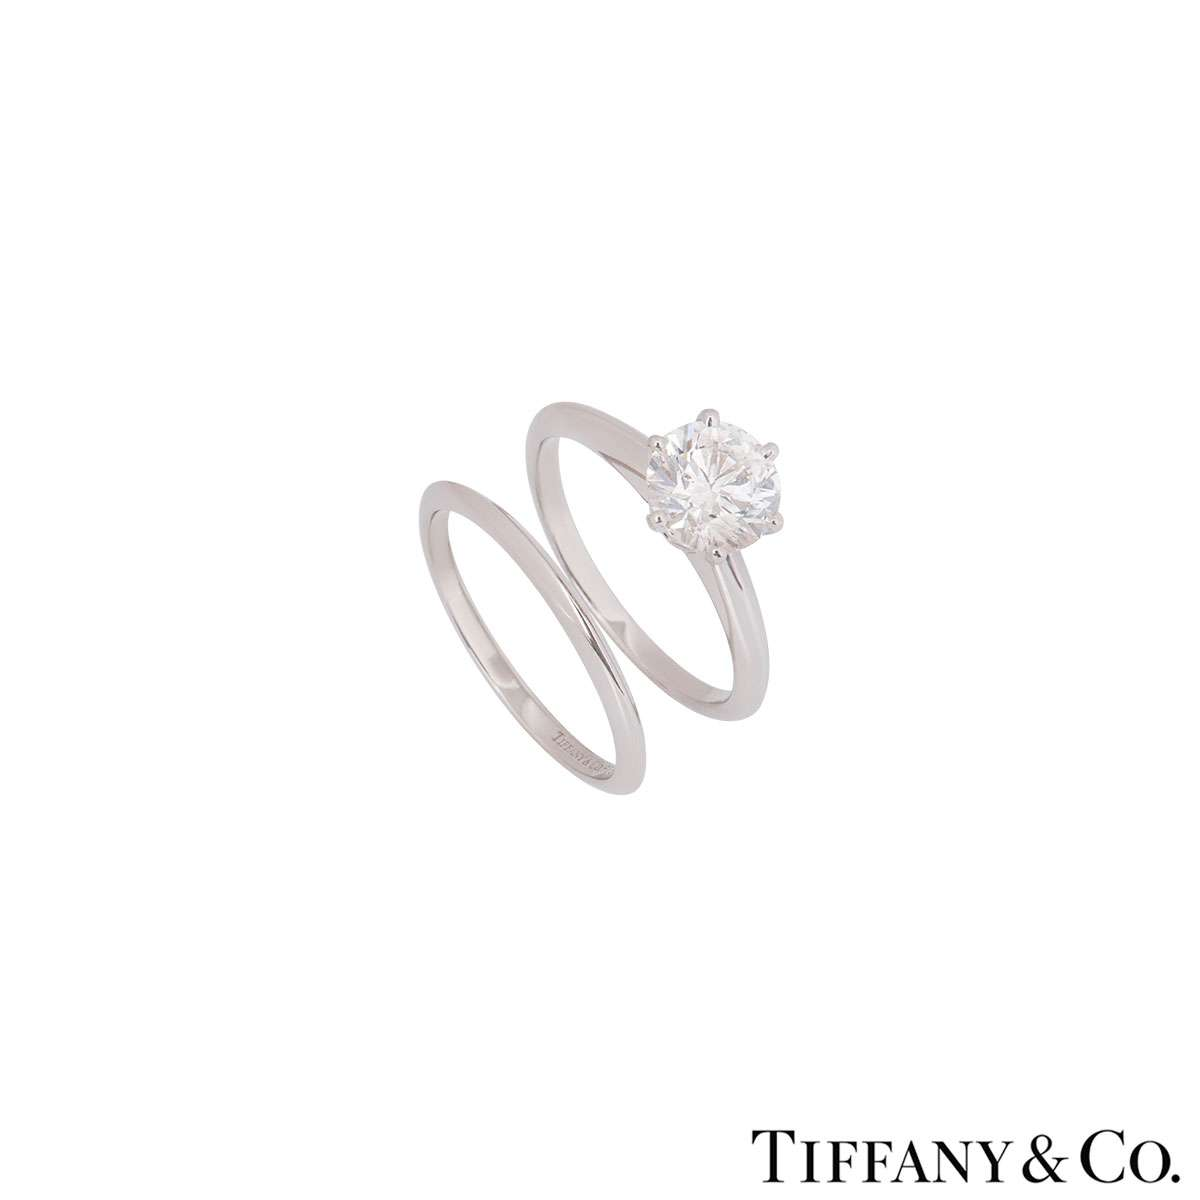 Tiffany & Co. Platinum Diamond Ring 1.71ct I/VVS1 With Plain Wedding Band